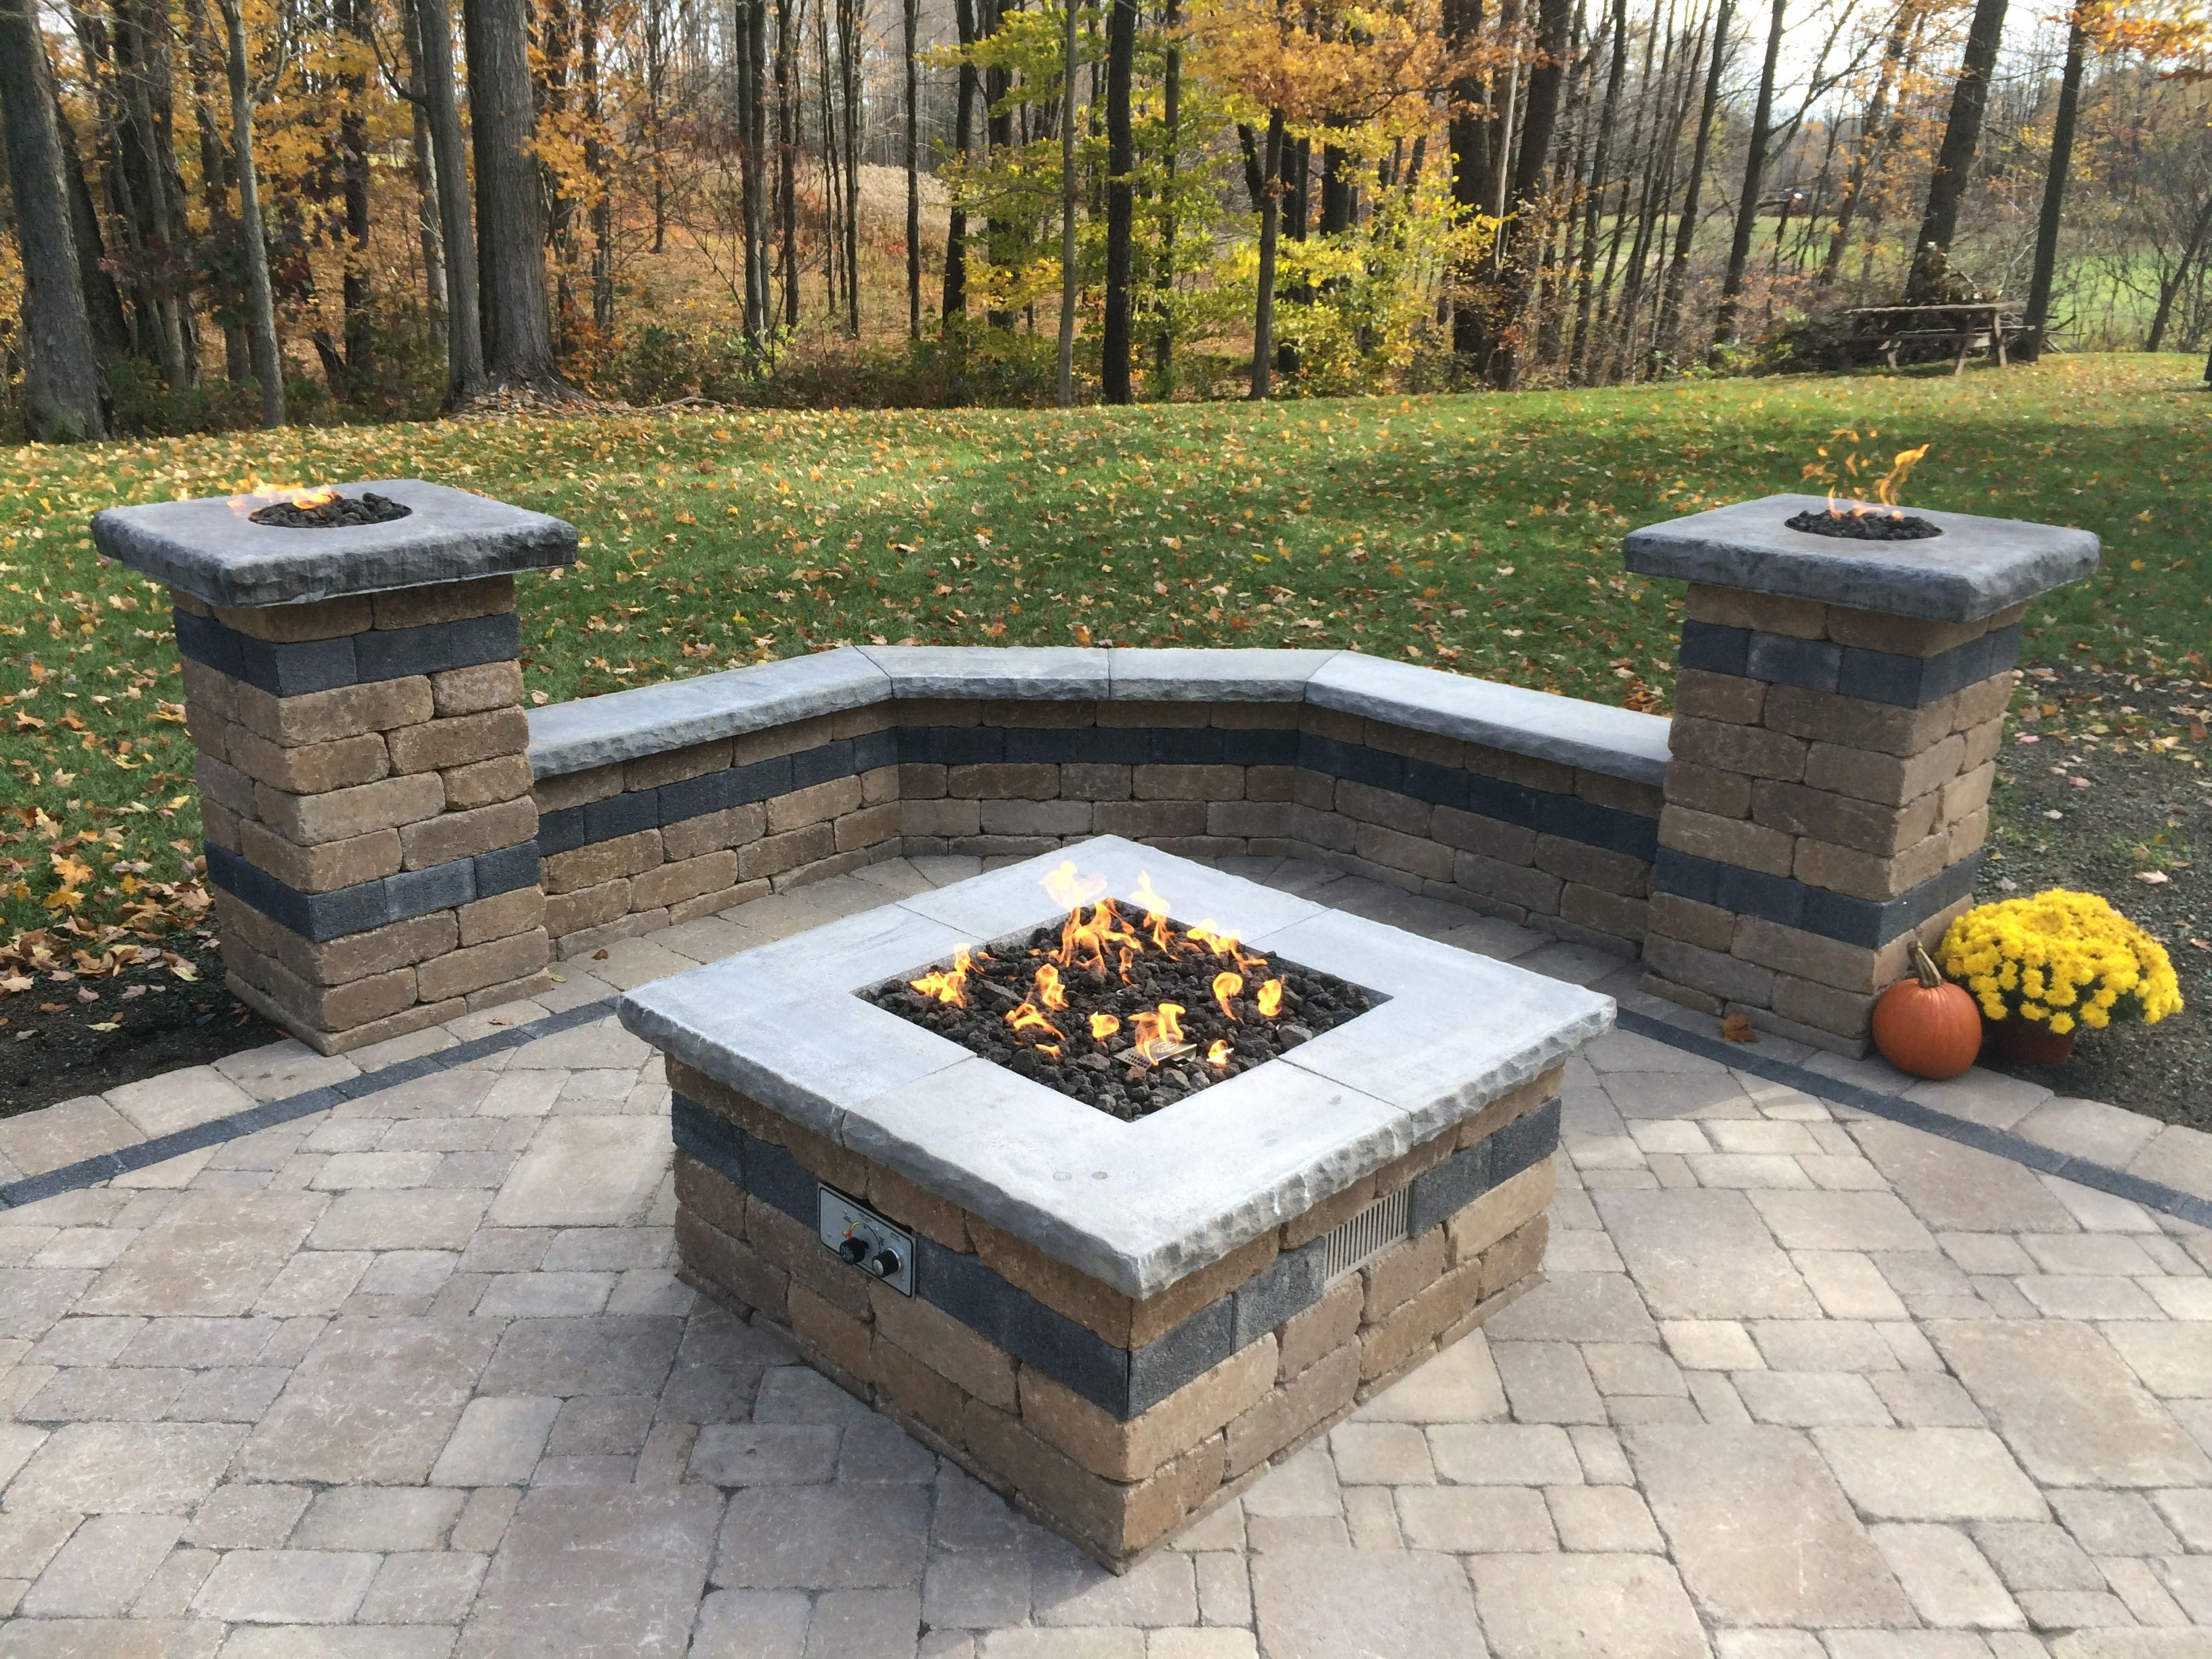 minnesota portfolio pavers patios paver plymouthmn deck steps inc work examples existing for design patio landscape from plymouth aspen